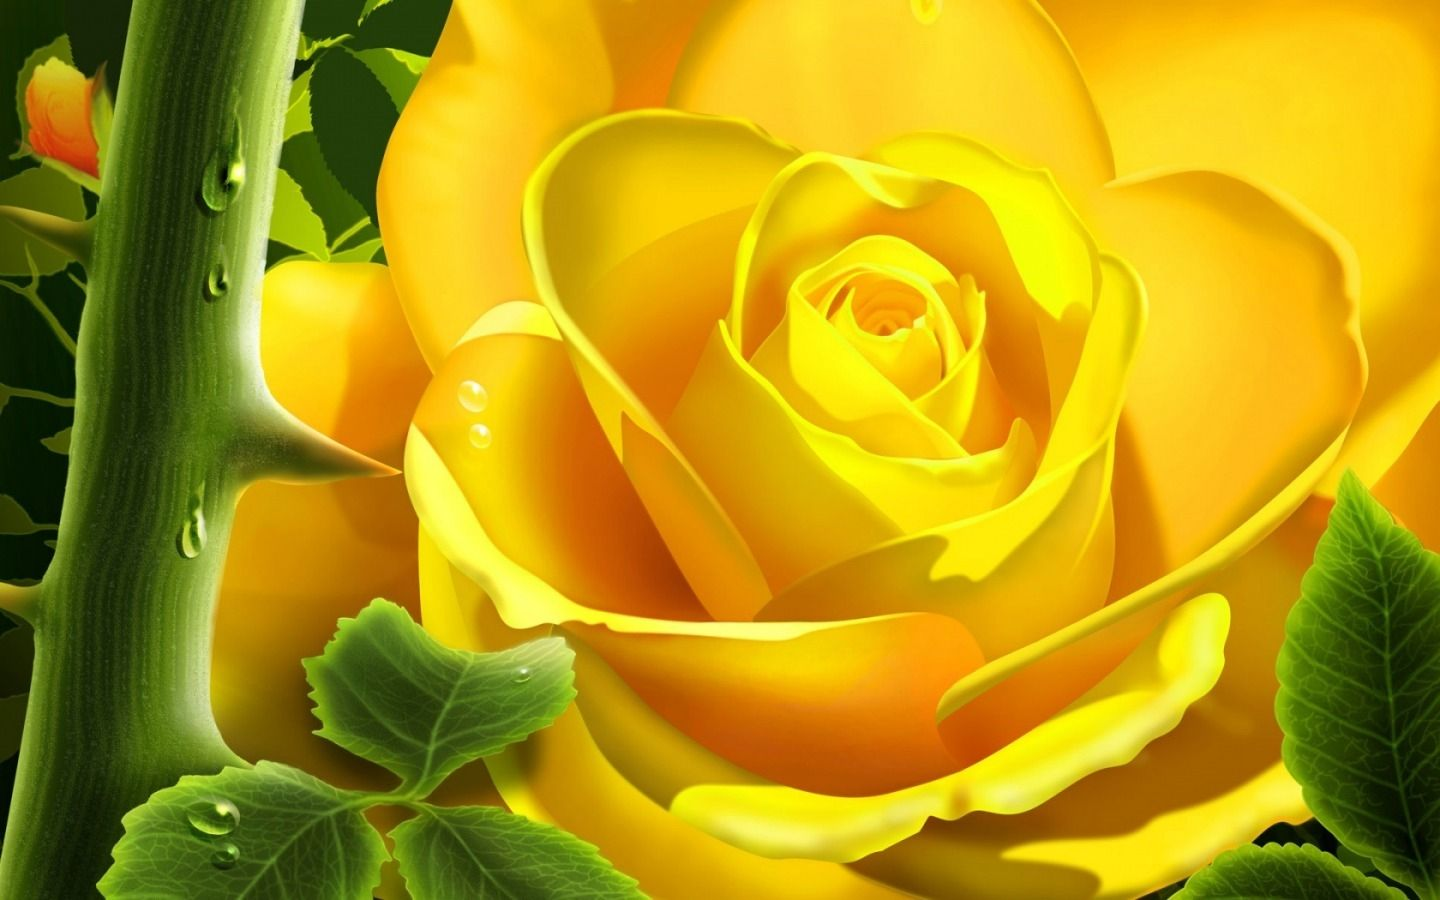 Download 3d Wallpaper Rose Hd 3d Wallpaper Rose Hd Download Download Download 3d Wallpaper Rose Hd Fro Rose Flower Wallpaper Rose Wallpaper Yellow Roses